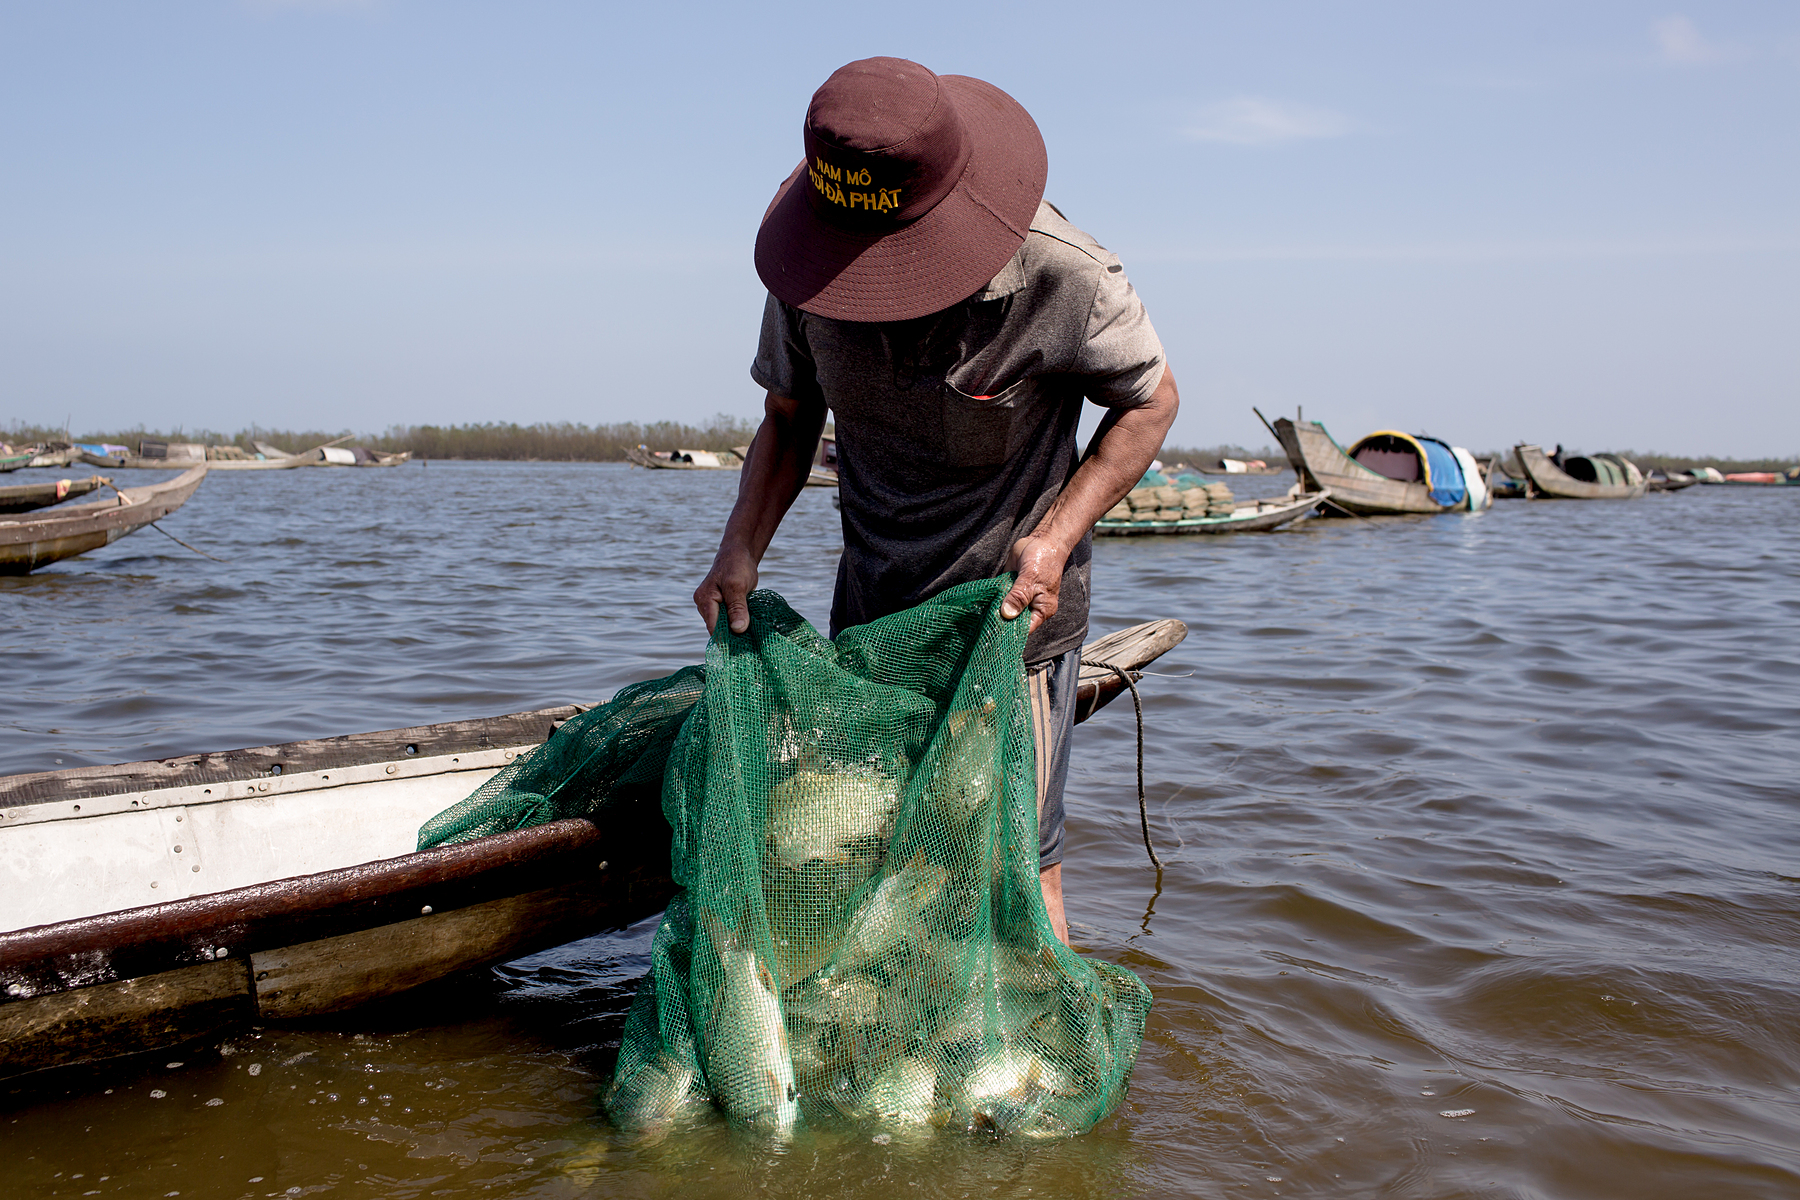 A fisherman wearing a wide-brimmed hat stands calf-deep in the water next to his boat and looks down at his fishing net.